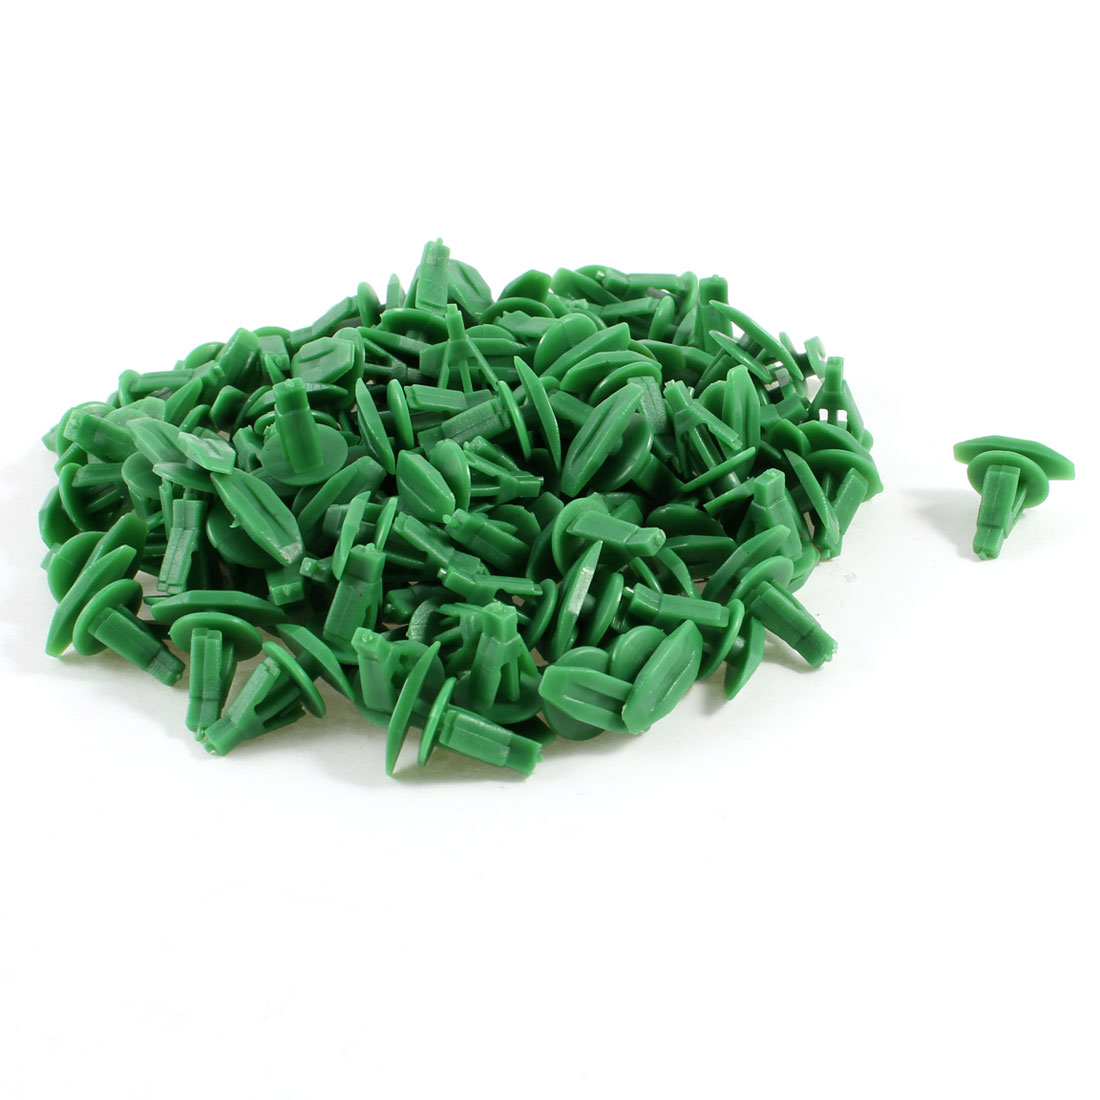 100 Pcs 9mm Hole Plastic Rivet Door Fastener Fastener Green for Cars Autos